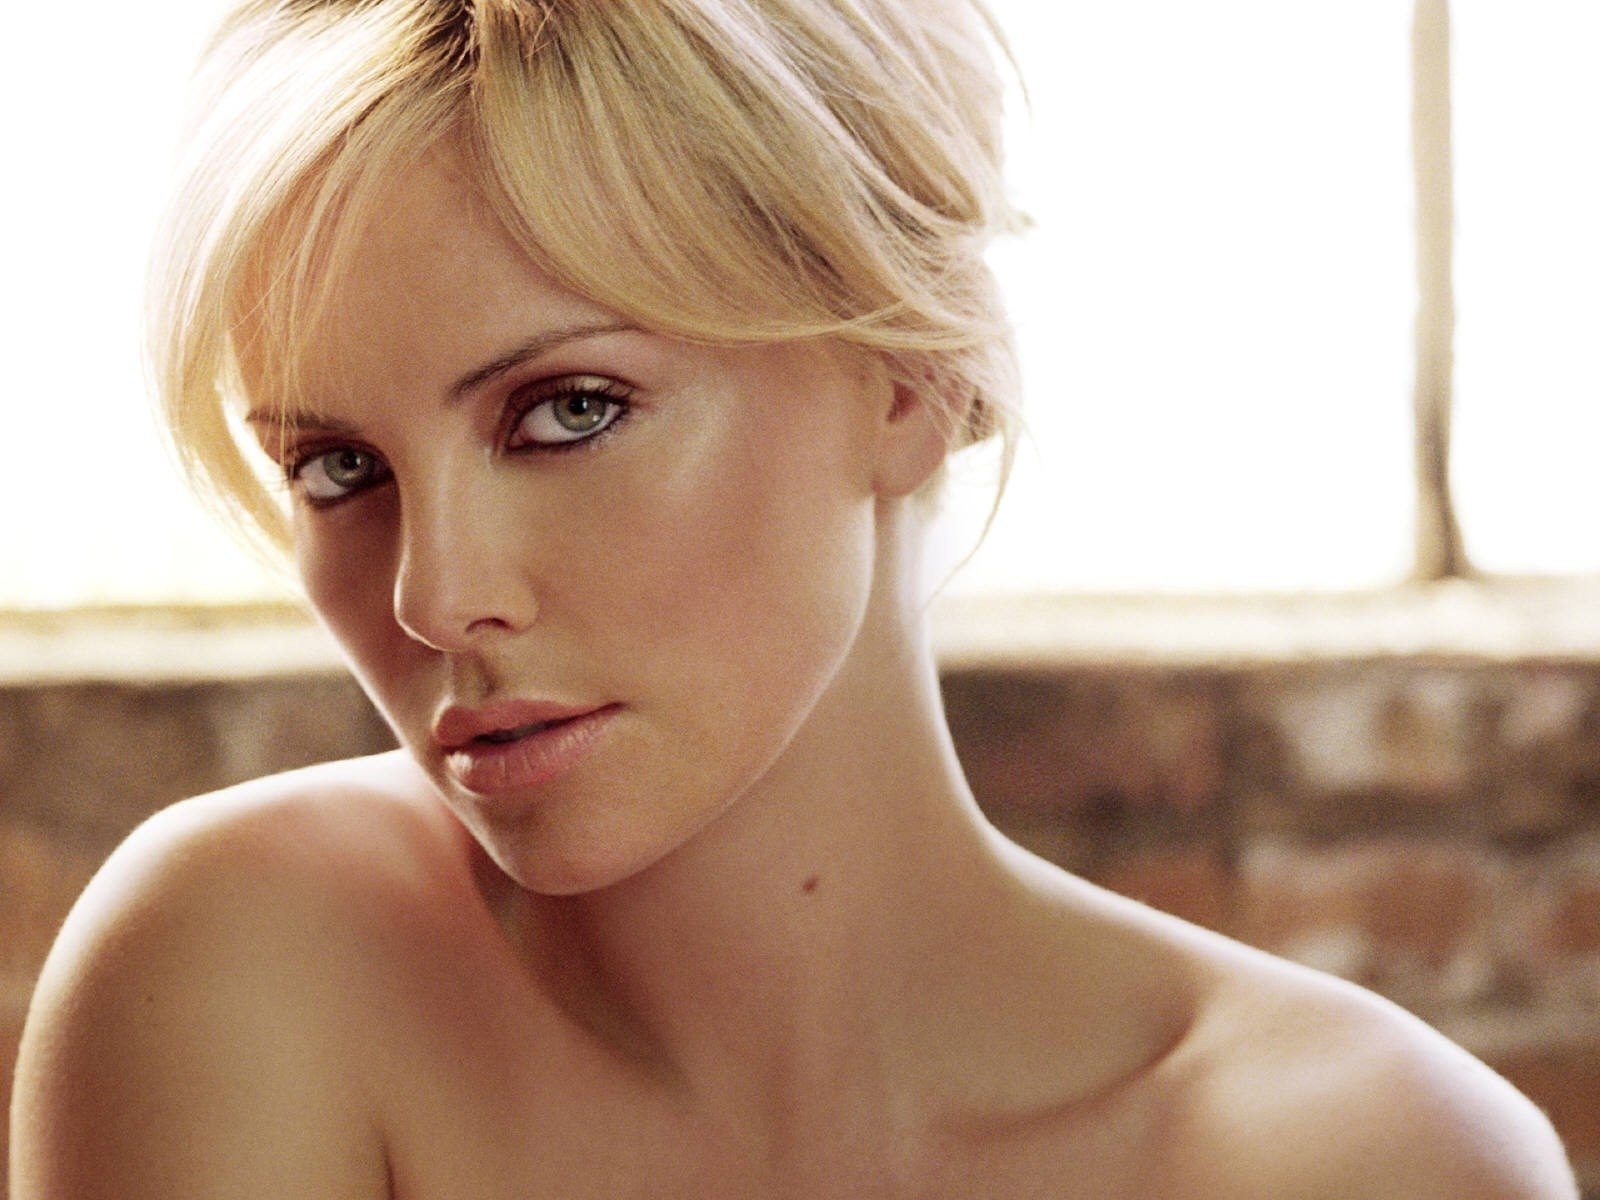 Wallpaper di Charlize Theron, premio Oscar per Monster